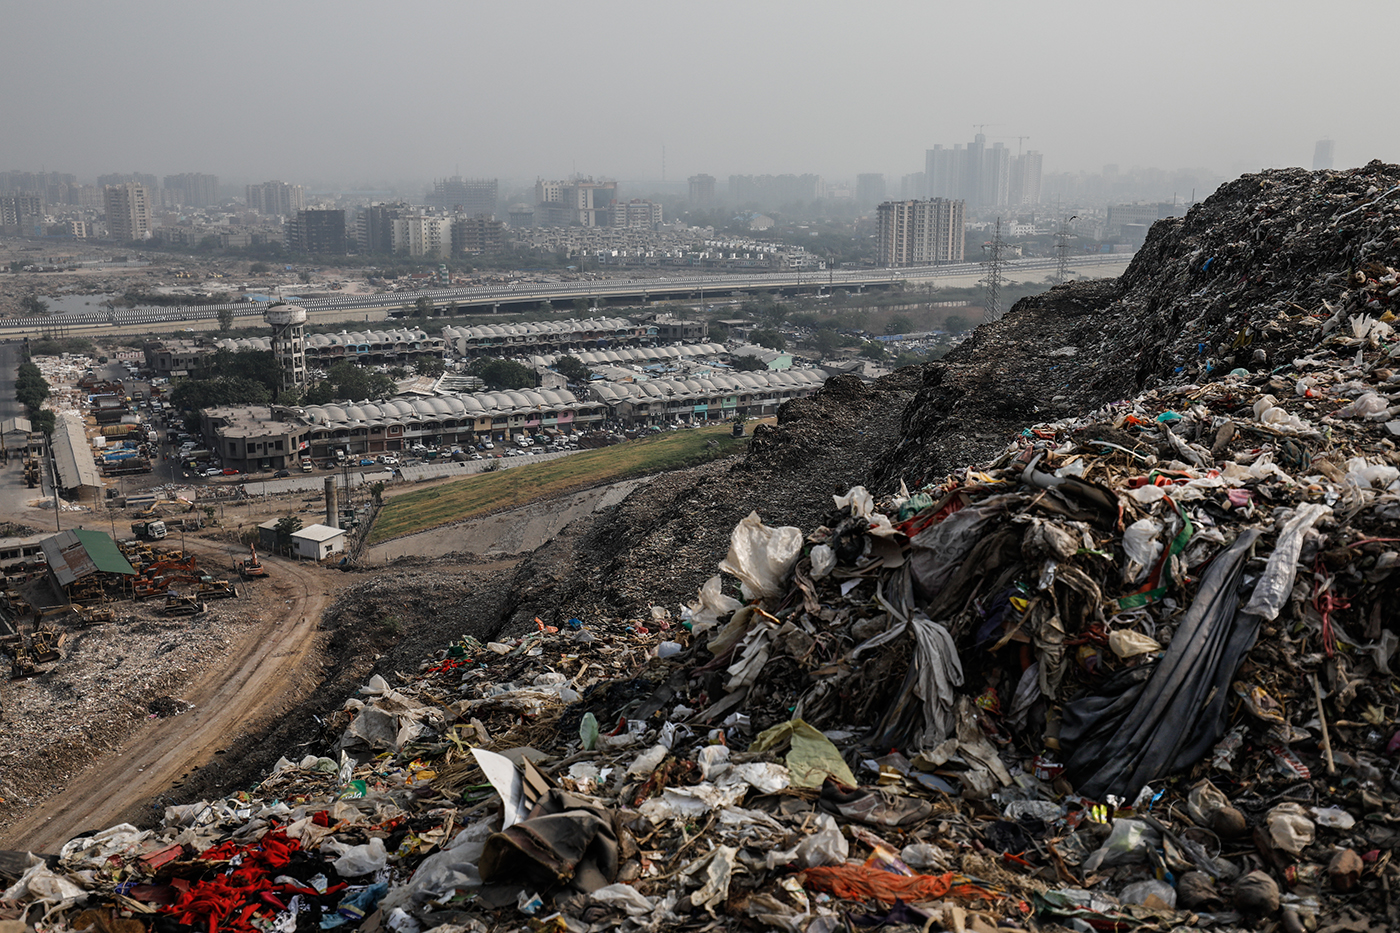 Ghazipur landfill is pictured overlooking the city in New Delhi, India.